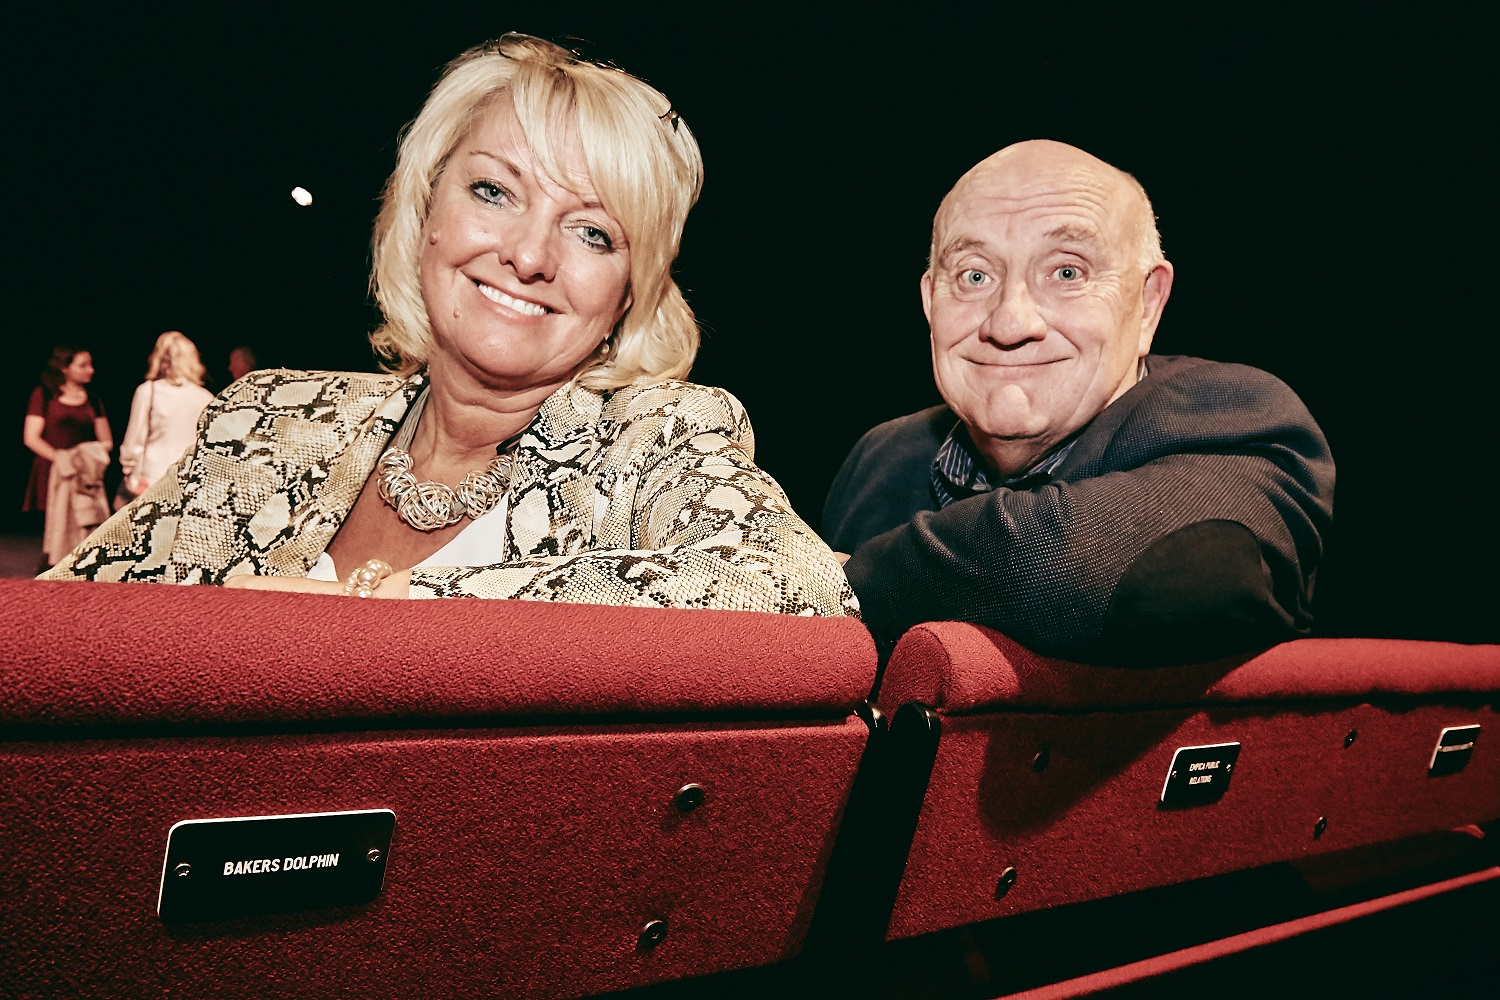 PR agency and coach operator stage show of support for new theatre studio